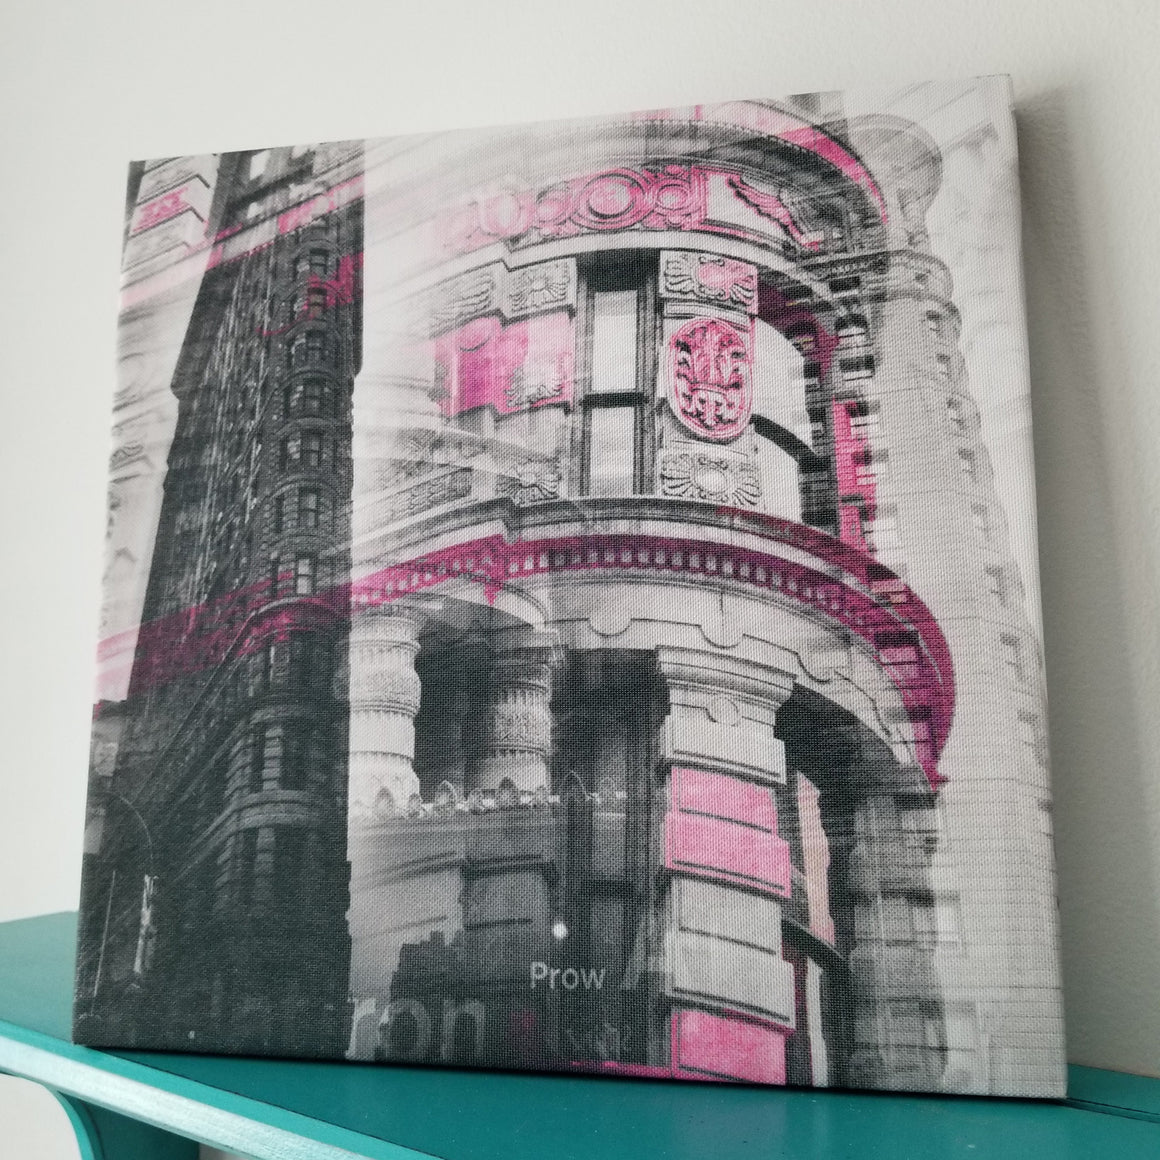 "New York 13"" Canvas - Flatiron Building - Photo Collage Wall Art"